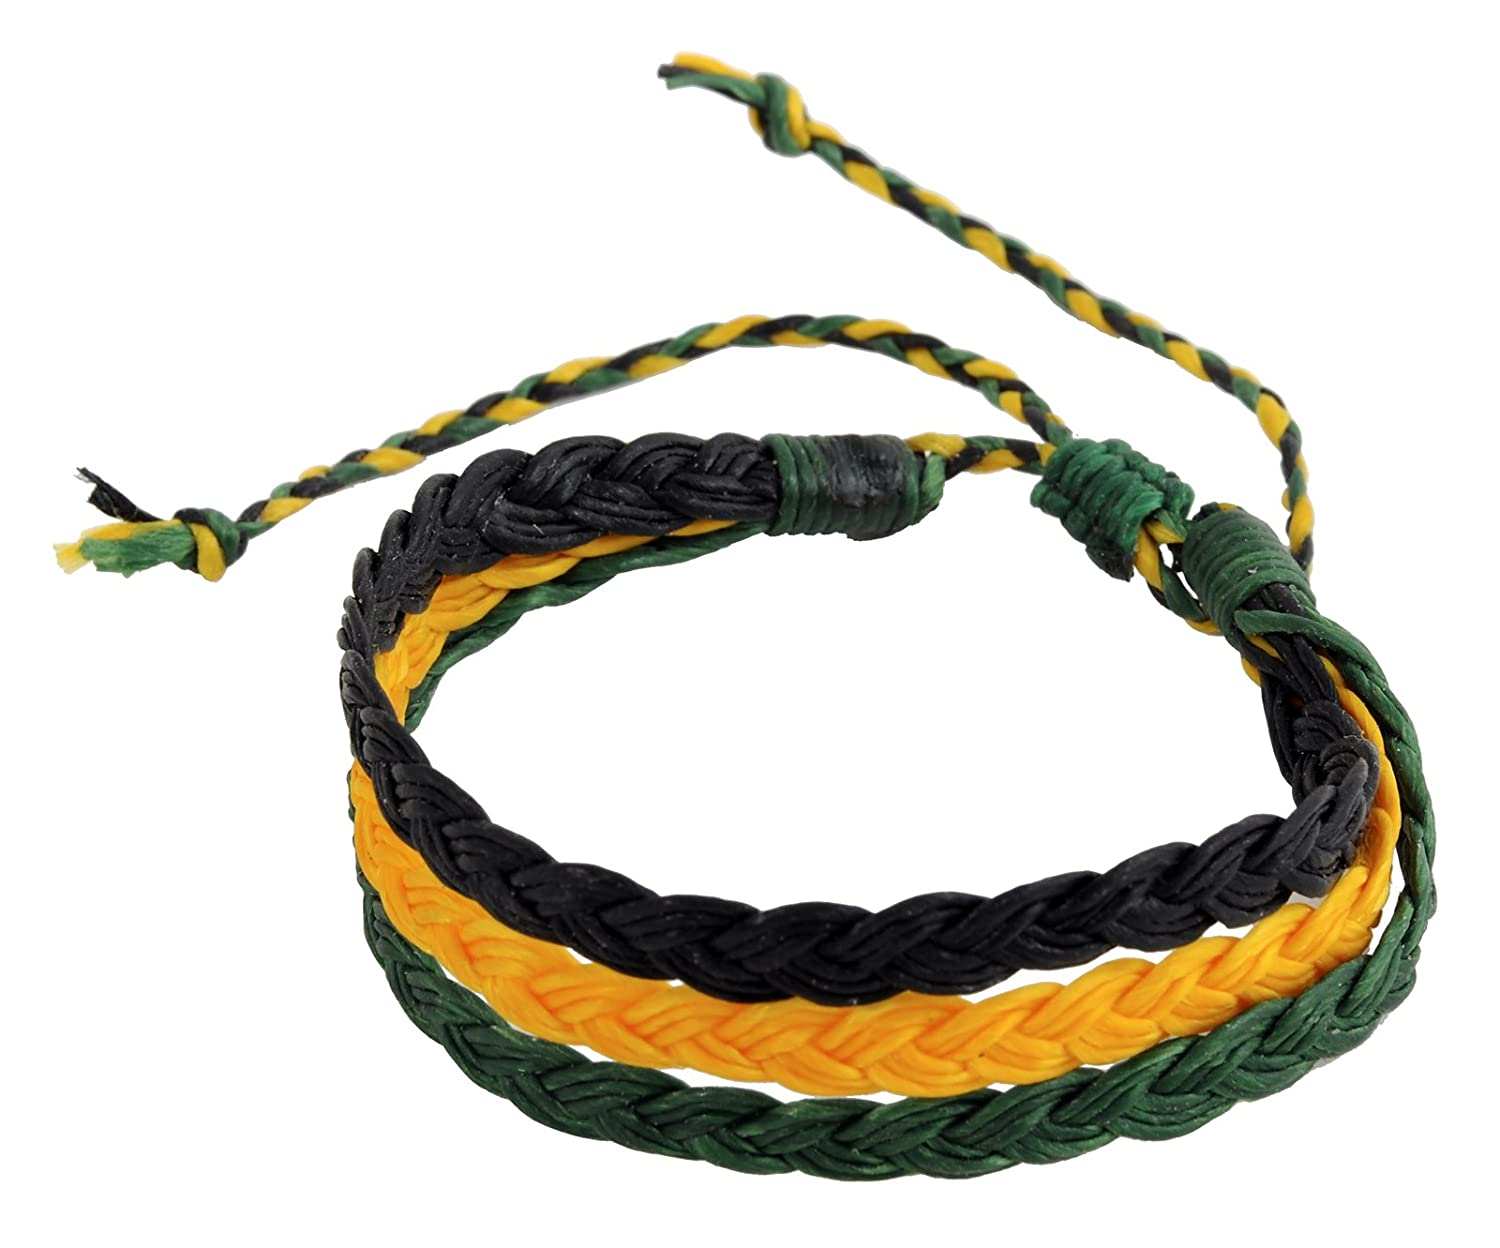 rasta4real RASTA Africa JAMAICA WRISTBAND (R4R13WB007) hotels great escapes africa самые красивые отели африки